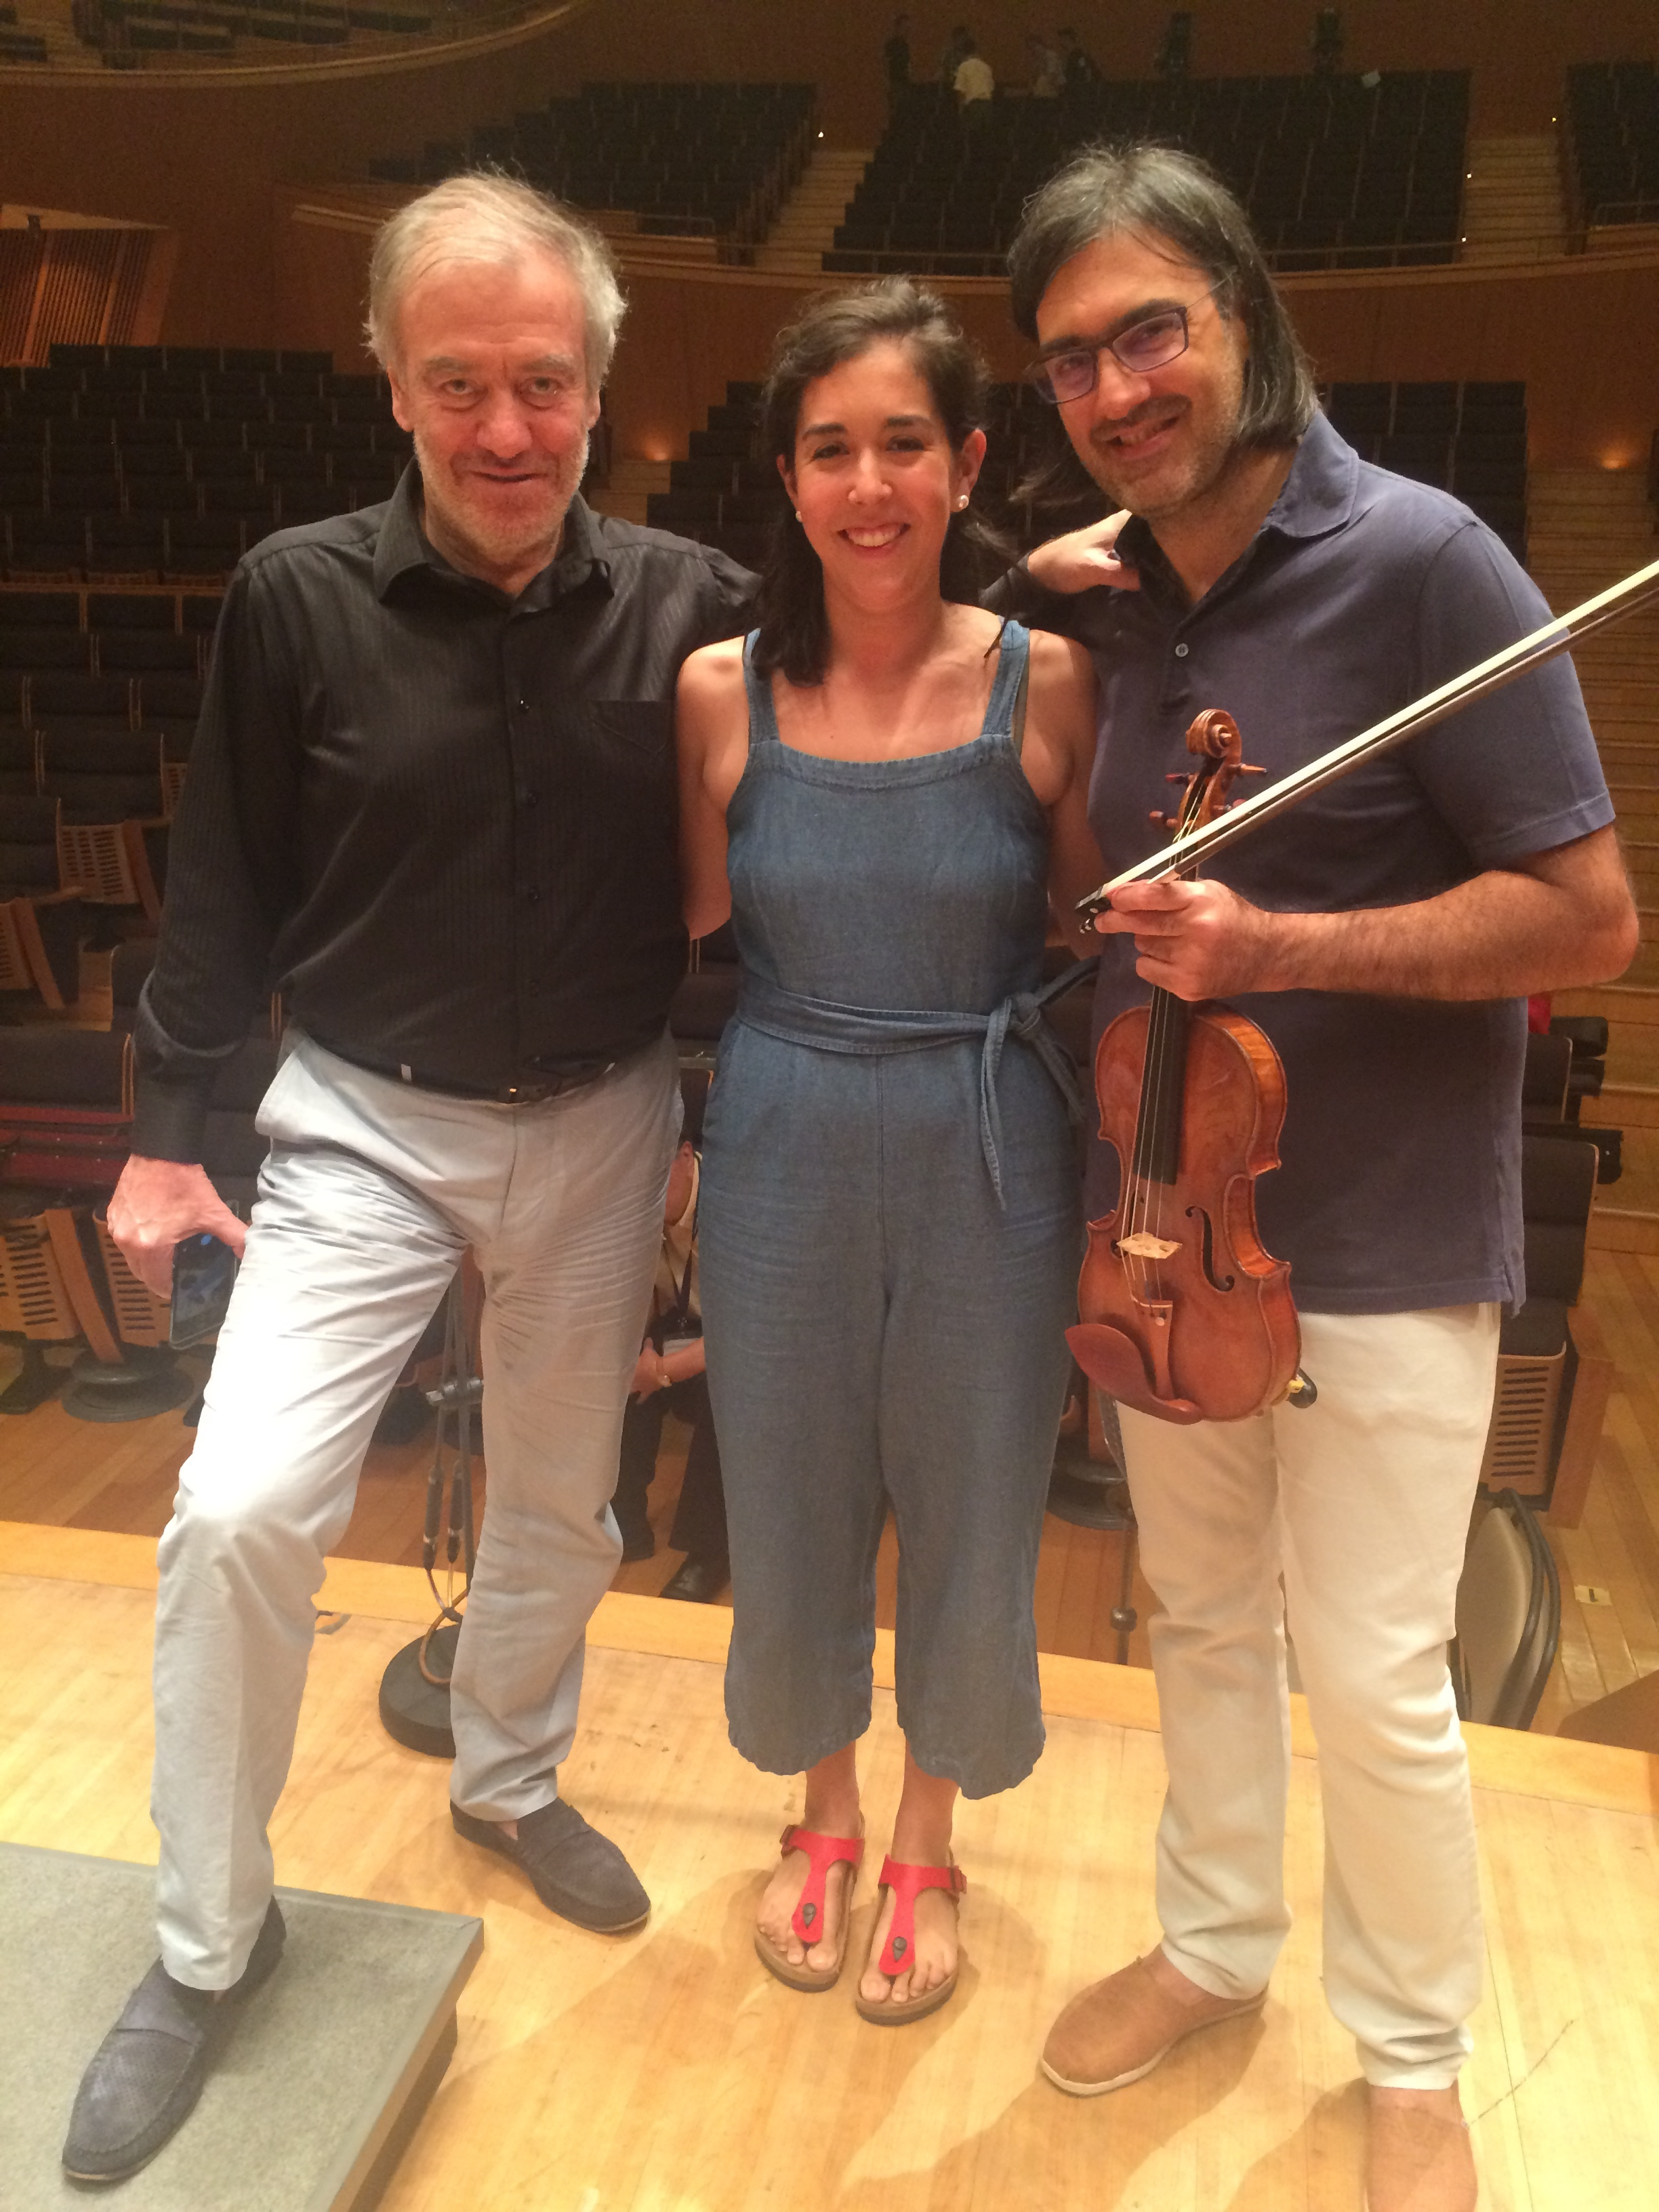 Pacific Music Festival 2017, with conductor Valery Gergiev and soloist Leonidas Kavakos after a rehearsal of Brahms Violin Concerto